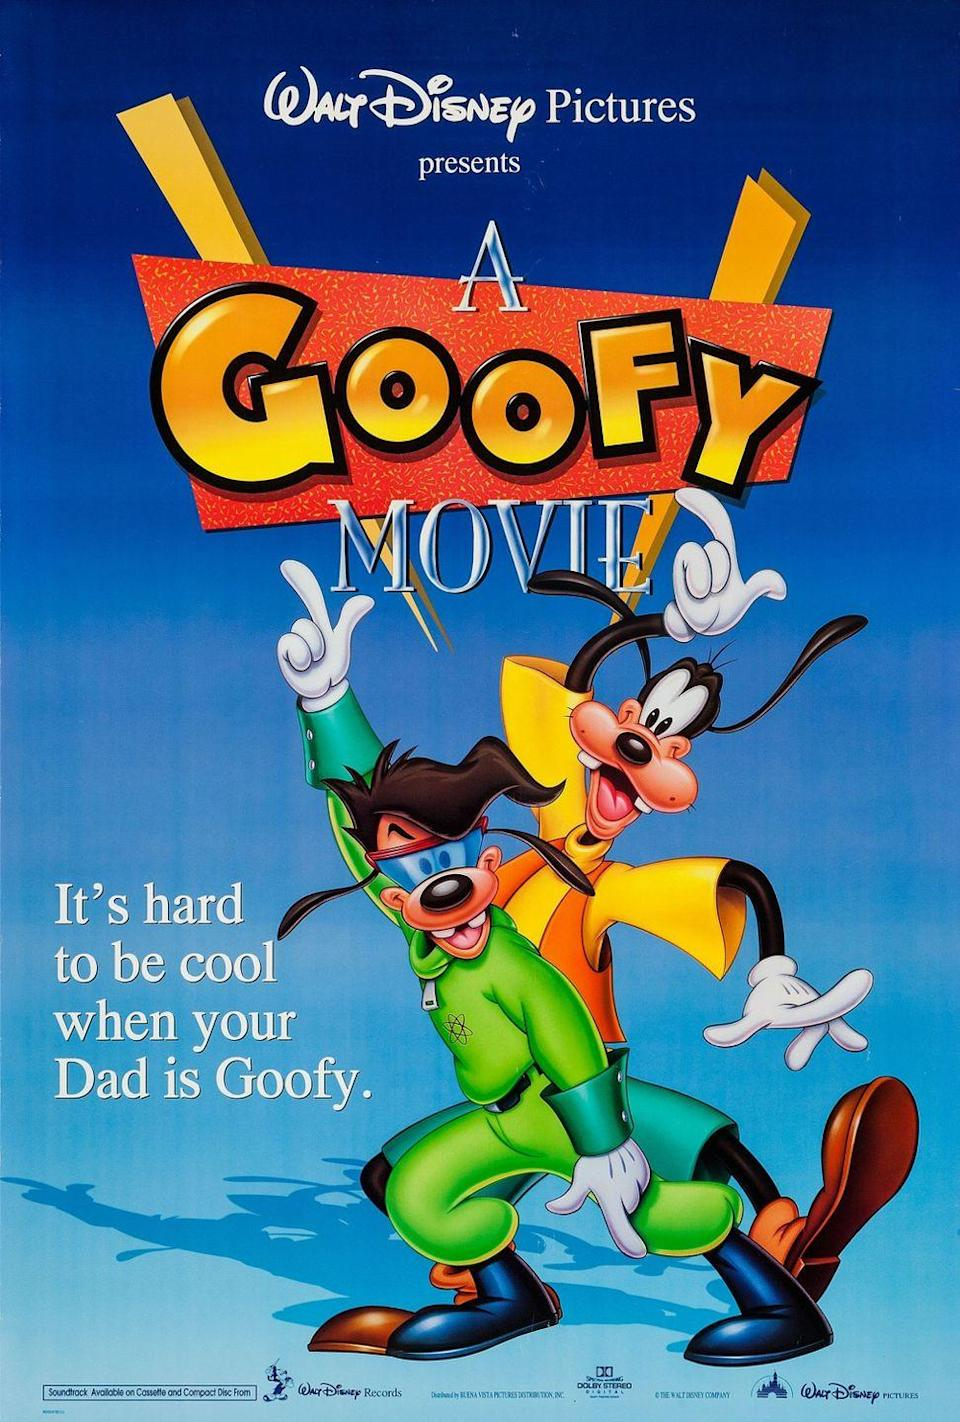 """<p><a class=""""link rapid-noclick-resp"""" href=""""https://movies.disney.com/a-goofy-movie"""" rel=""""nofollow noopener"""" target=""""_blank"""" data-ylk=""""slk:STREAM NOW"""">STREAM NOW</a></p><p>In this classic animated film, Goofy and his son Max must find a balance between their shifting father-son relationship. Revealing the lesson that you may not be as different from your dad as you think, <em>A Goofy Movie </em>will tug at your both heartstrings and your funny bone at the same time.</p>"""